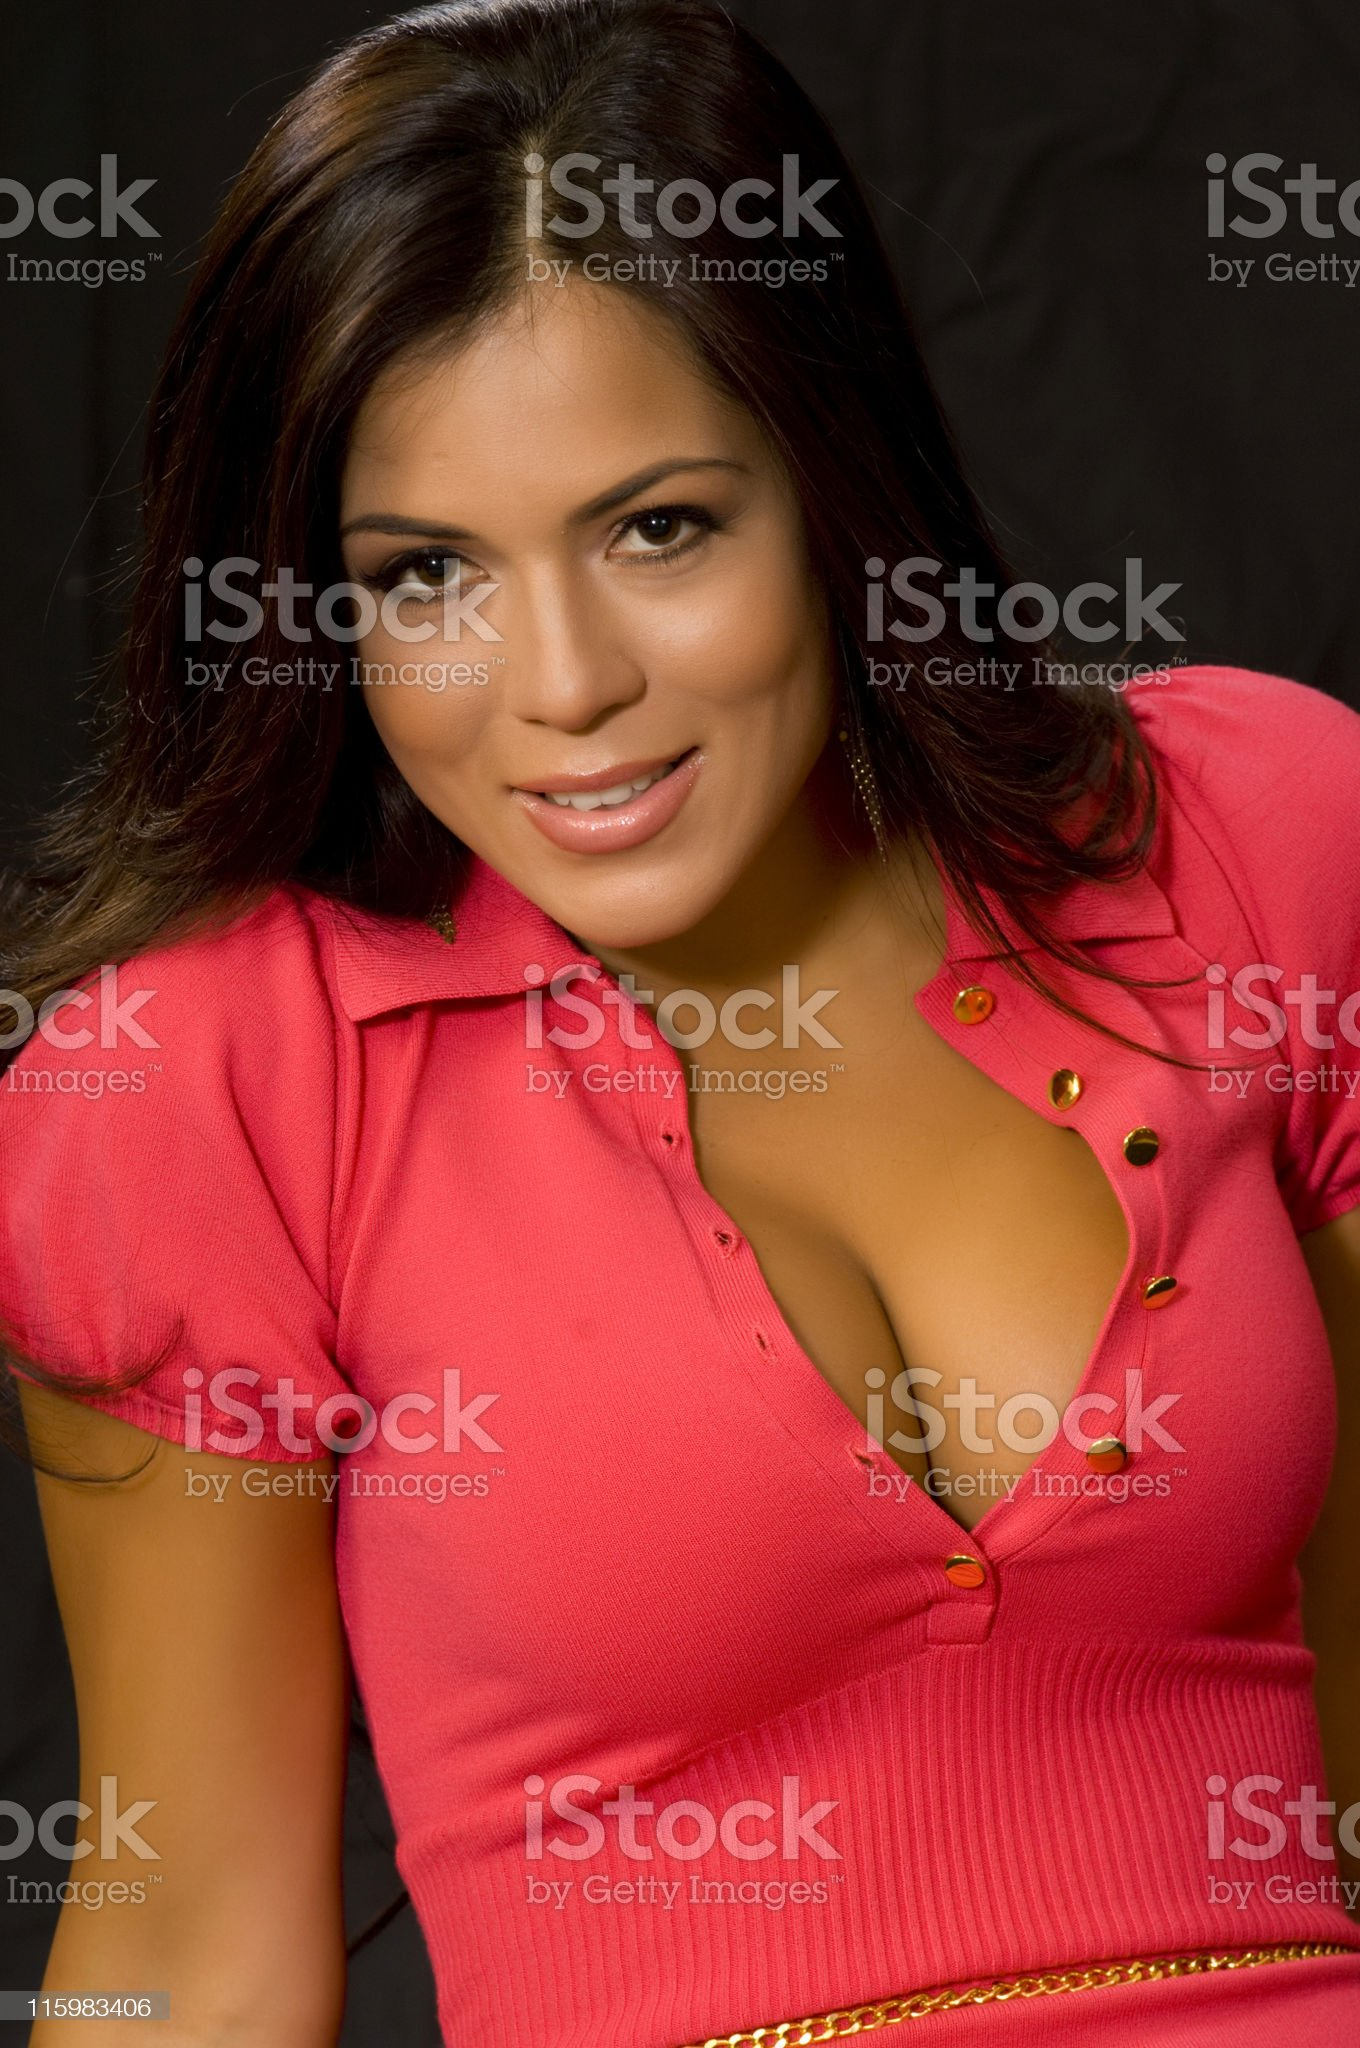 Portrait of seductive woman with low cut blouse. royalty-free stock photo